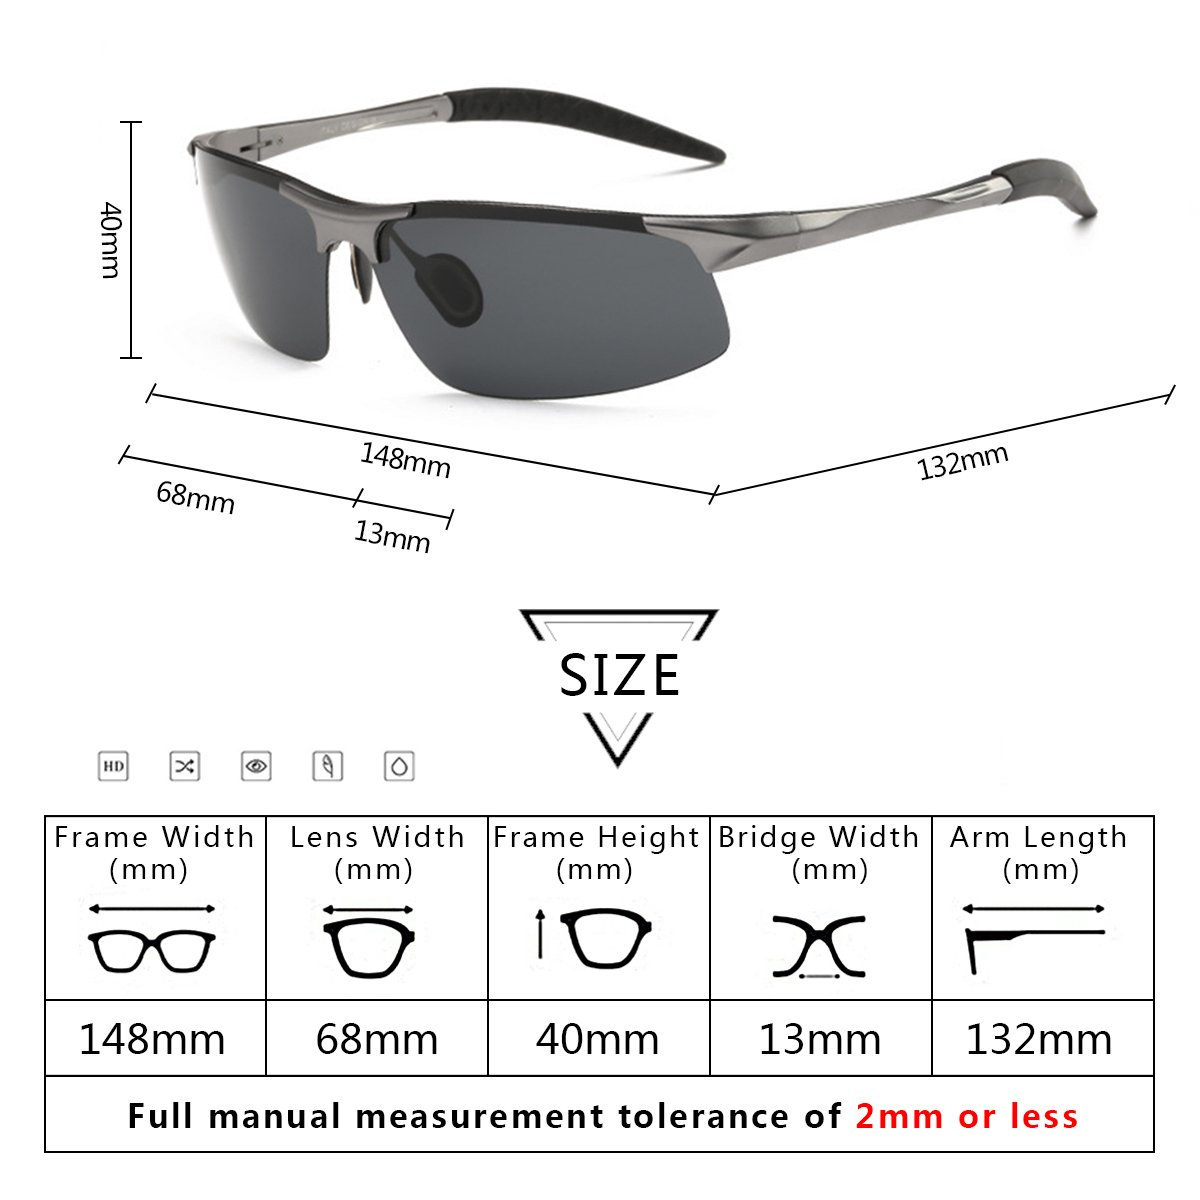 Sunglasses for Men WISH CLUB Men\'s Sports Style Polarized Sunglasses For Outdoor